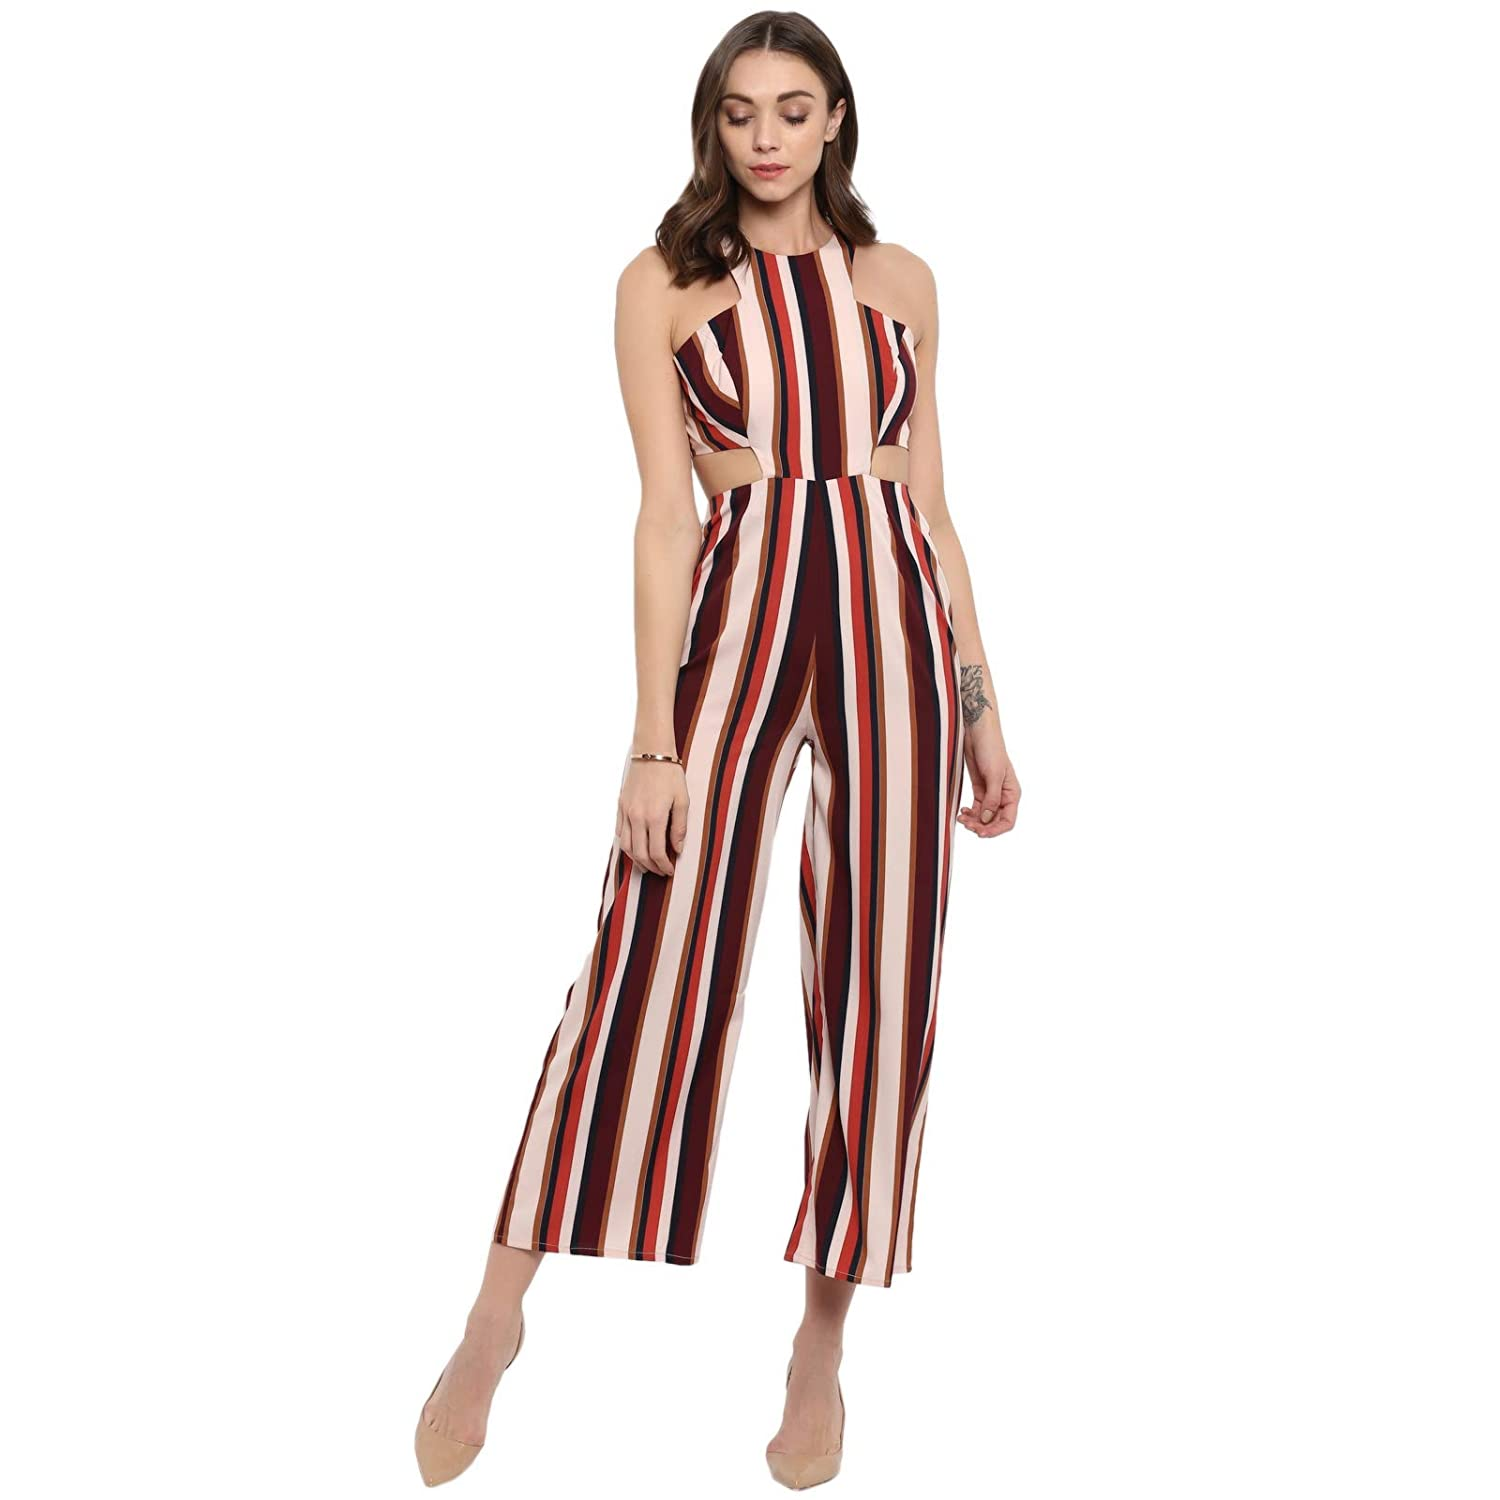 a455c4aea60 Spotstyl Tan Stripe trim dungaree jumpsuits for women stylish casual  jumpsuits for girls casual jumpsuits for women s western wear latest  western jumpsuits ...